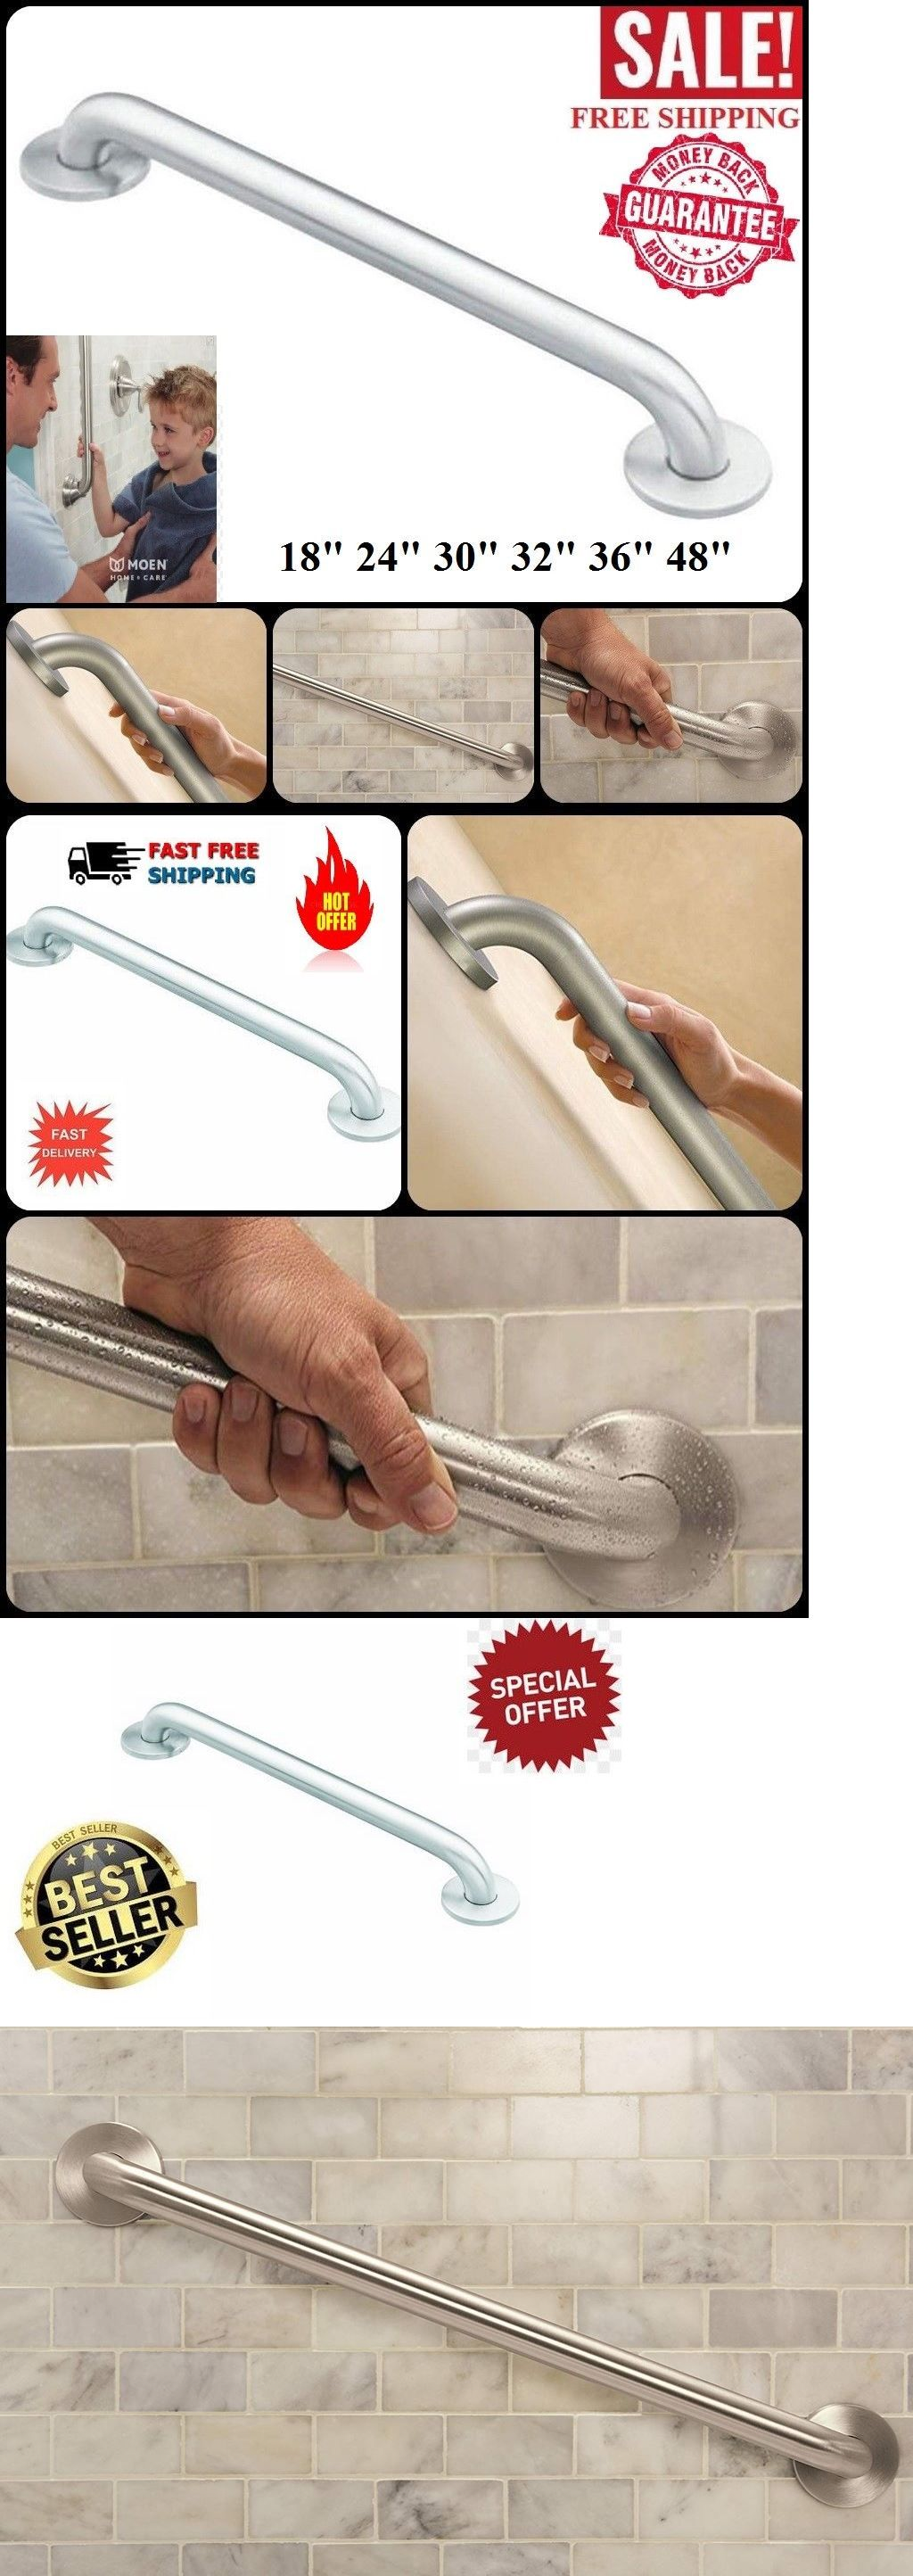 Handles and rails bathroom grab bar safety handle stainless